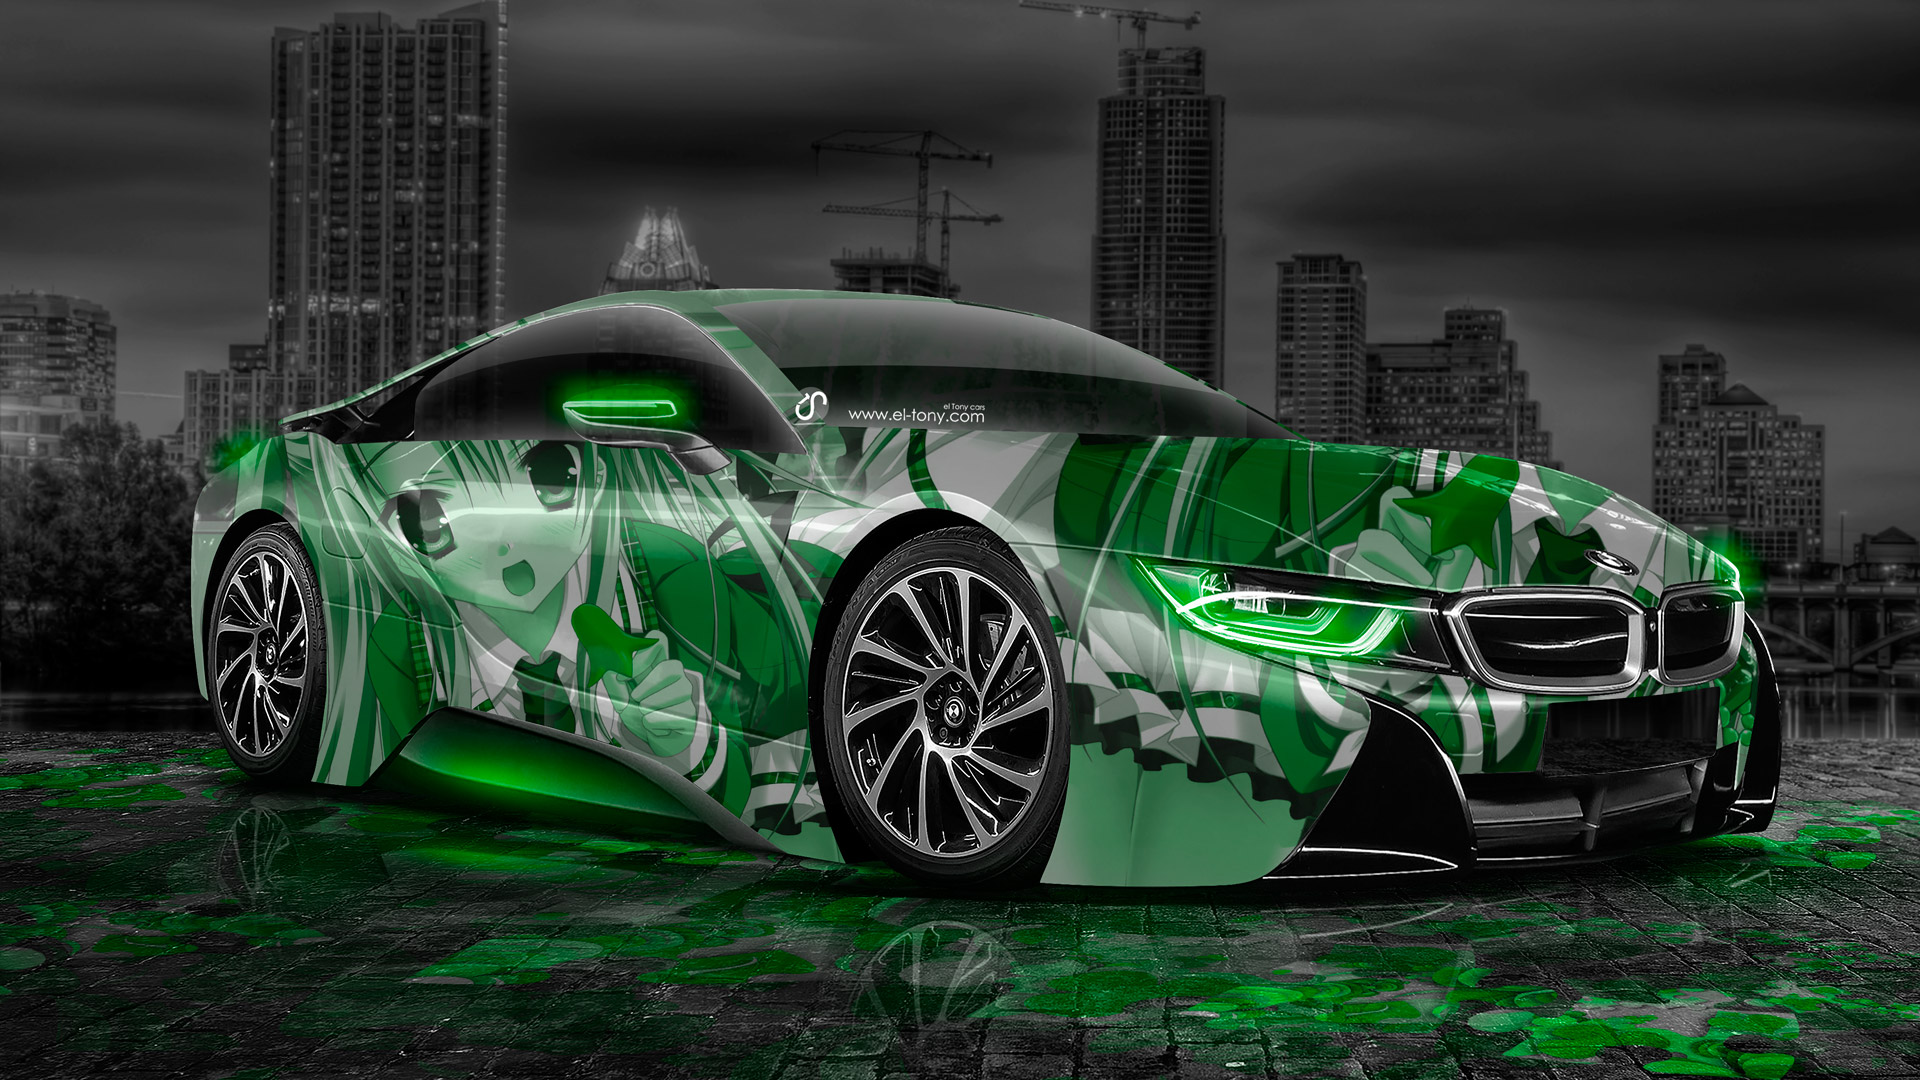 Bmw I Anime Girl Aerography City Car Green Neon Hd Wallpapers Design By Tony Kokhan Www El Tony Com